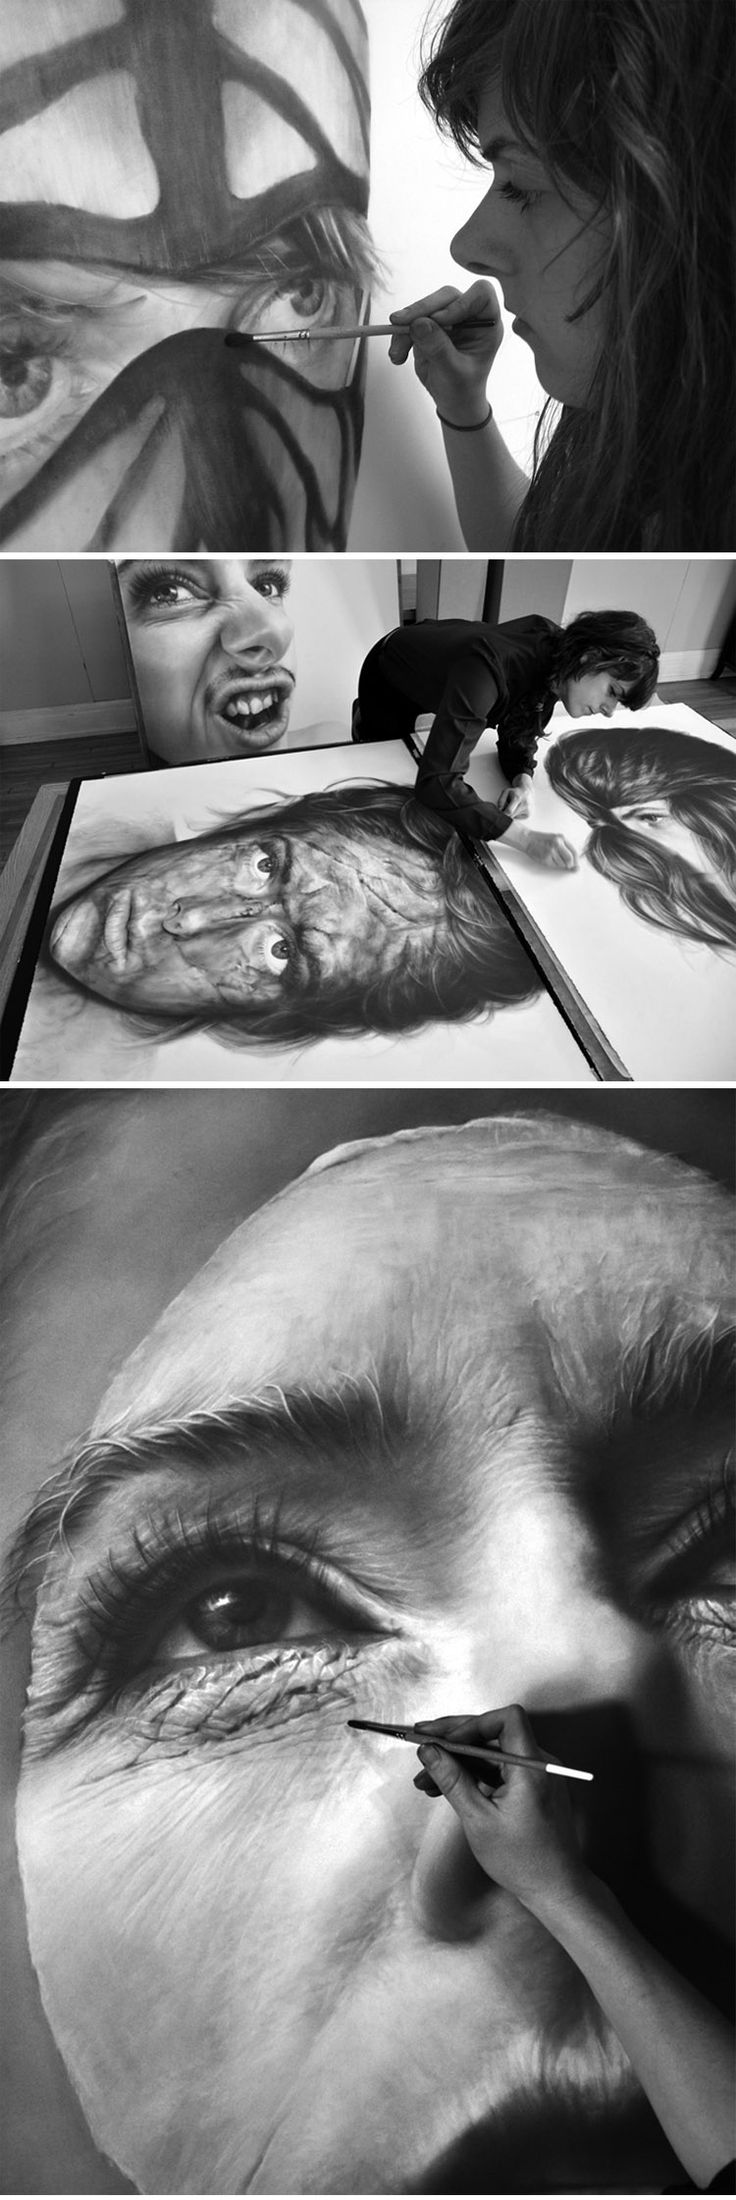 Melissa Cooke working on her graphite drawings